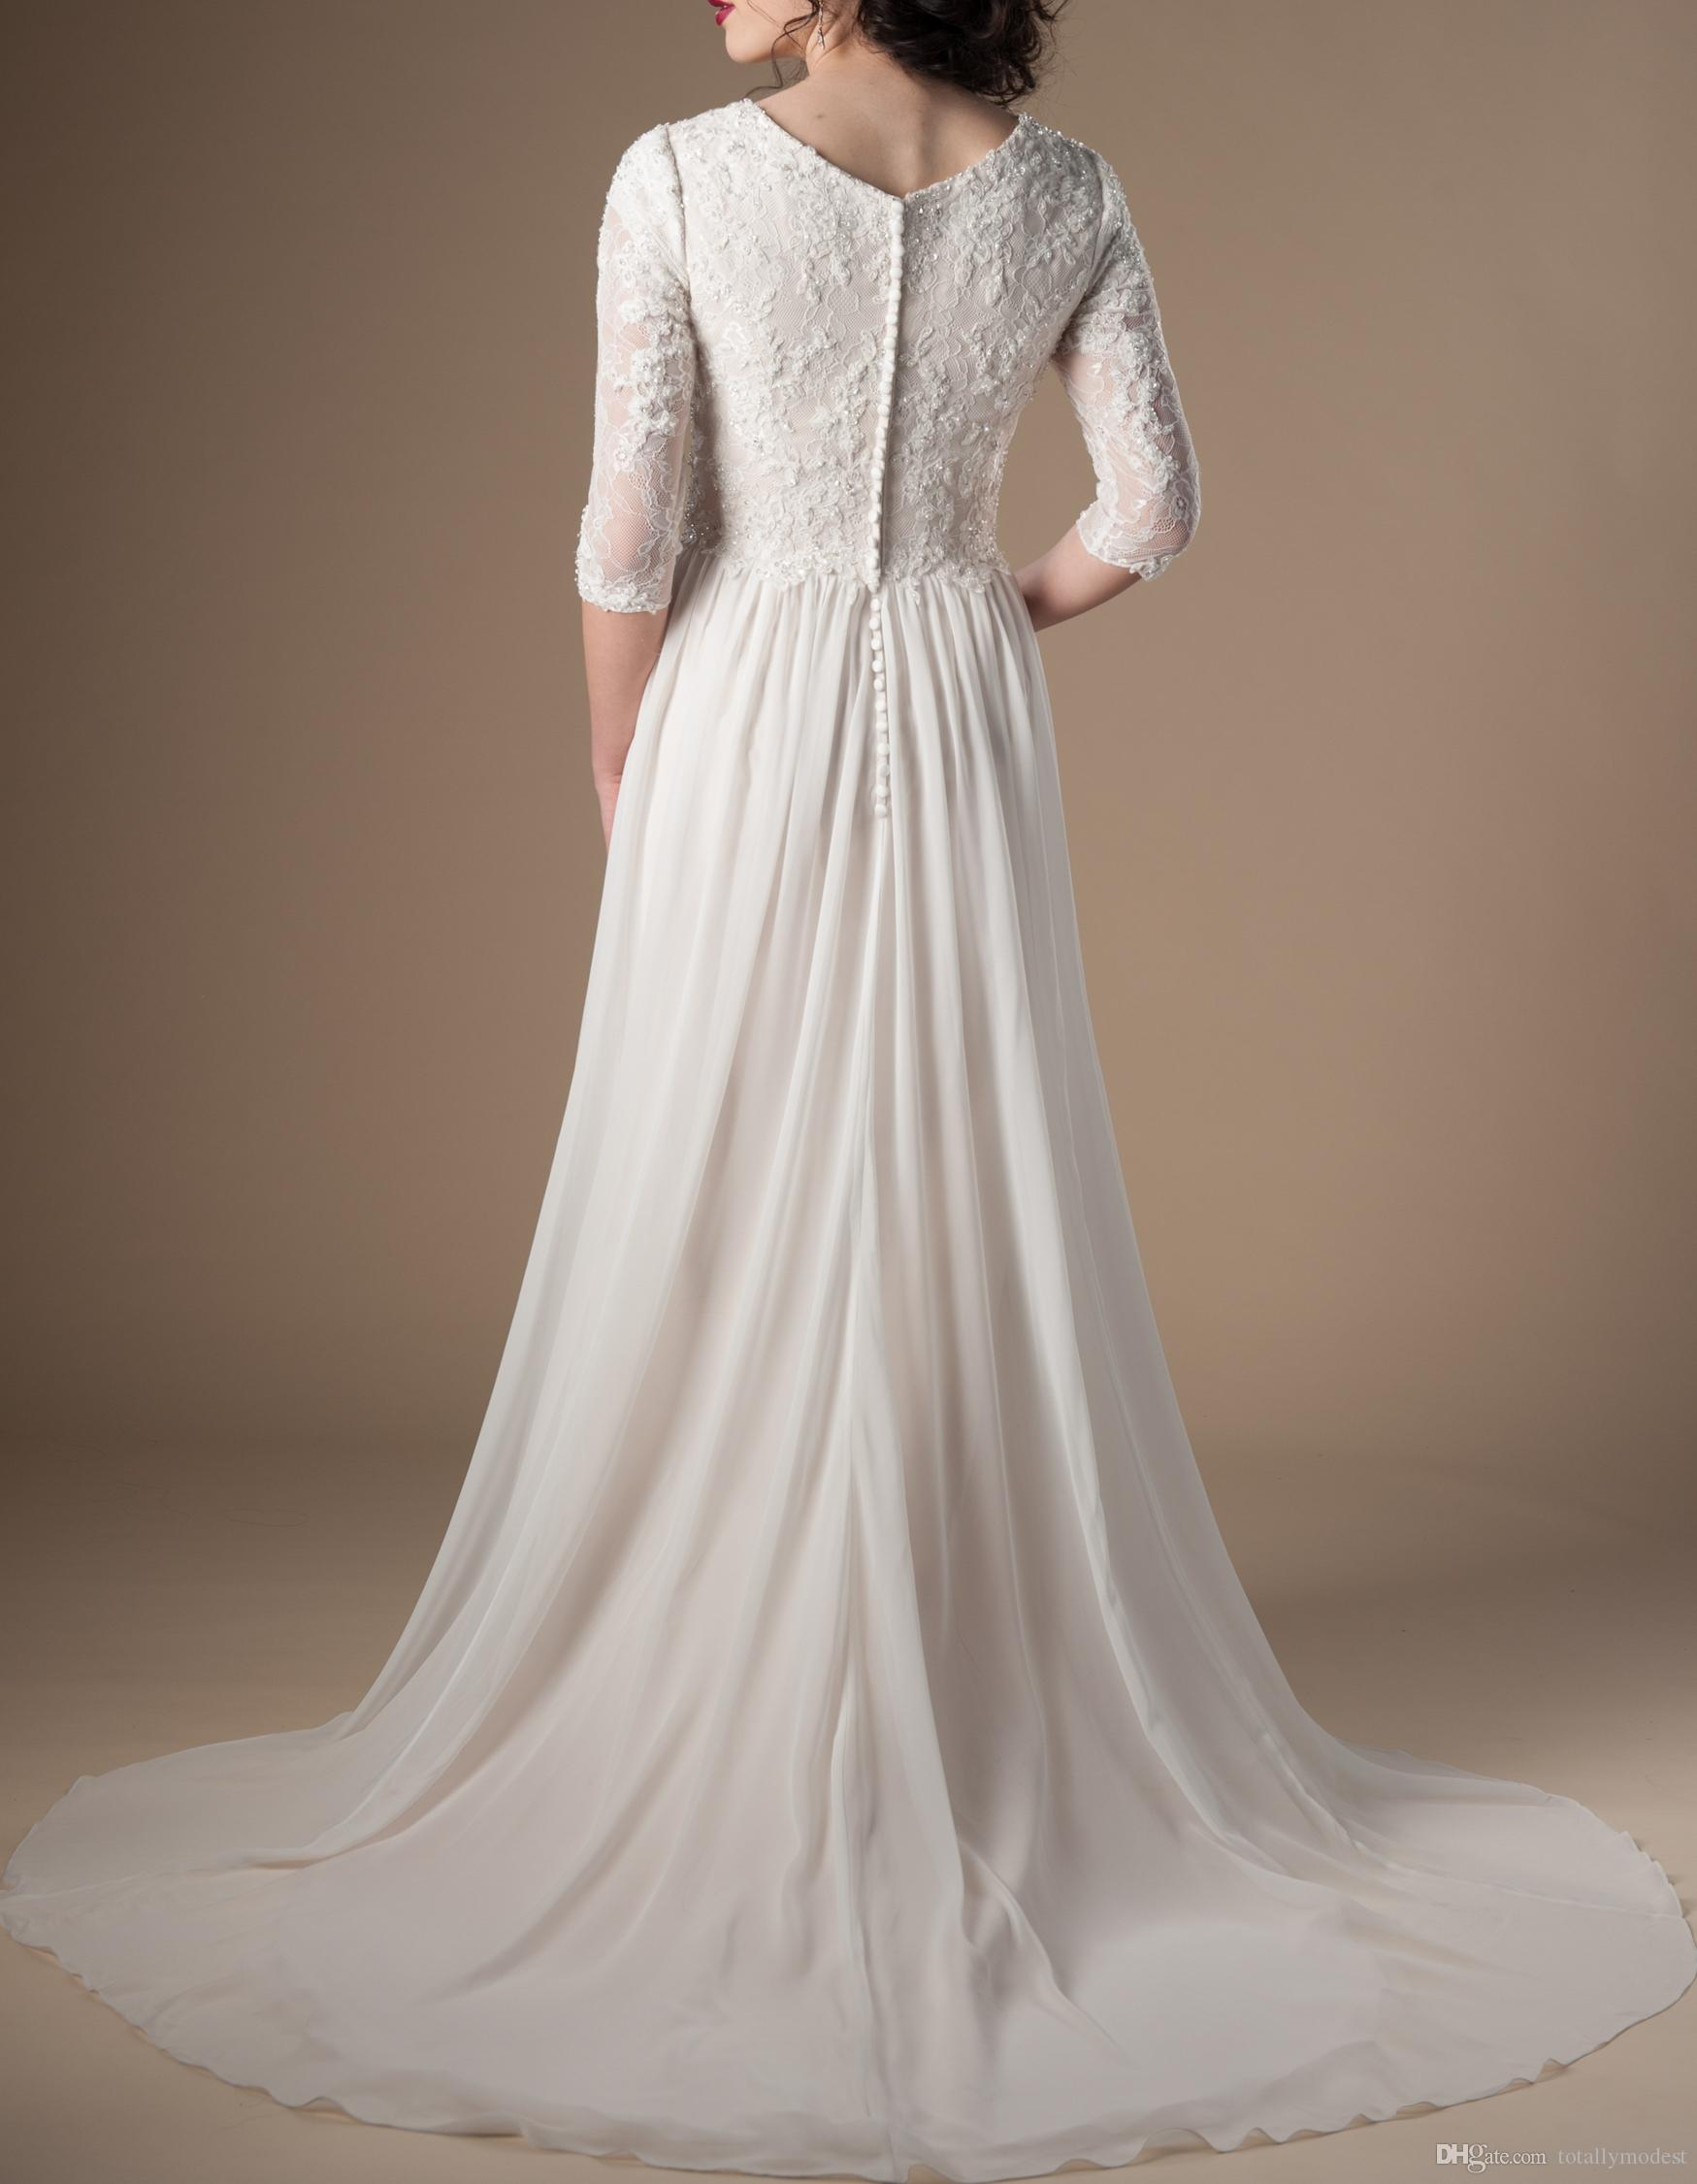 Ivory Champagne Modest Wedding Dresses With 3/4 Sleeves Beaded Lace A-line Chiffon Boho Informal Bridal Gown LDS Religious Wedding Gown